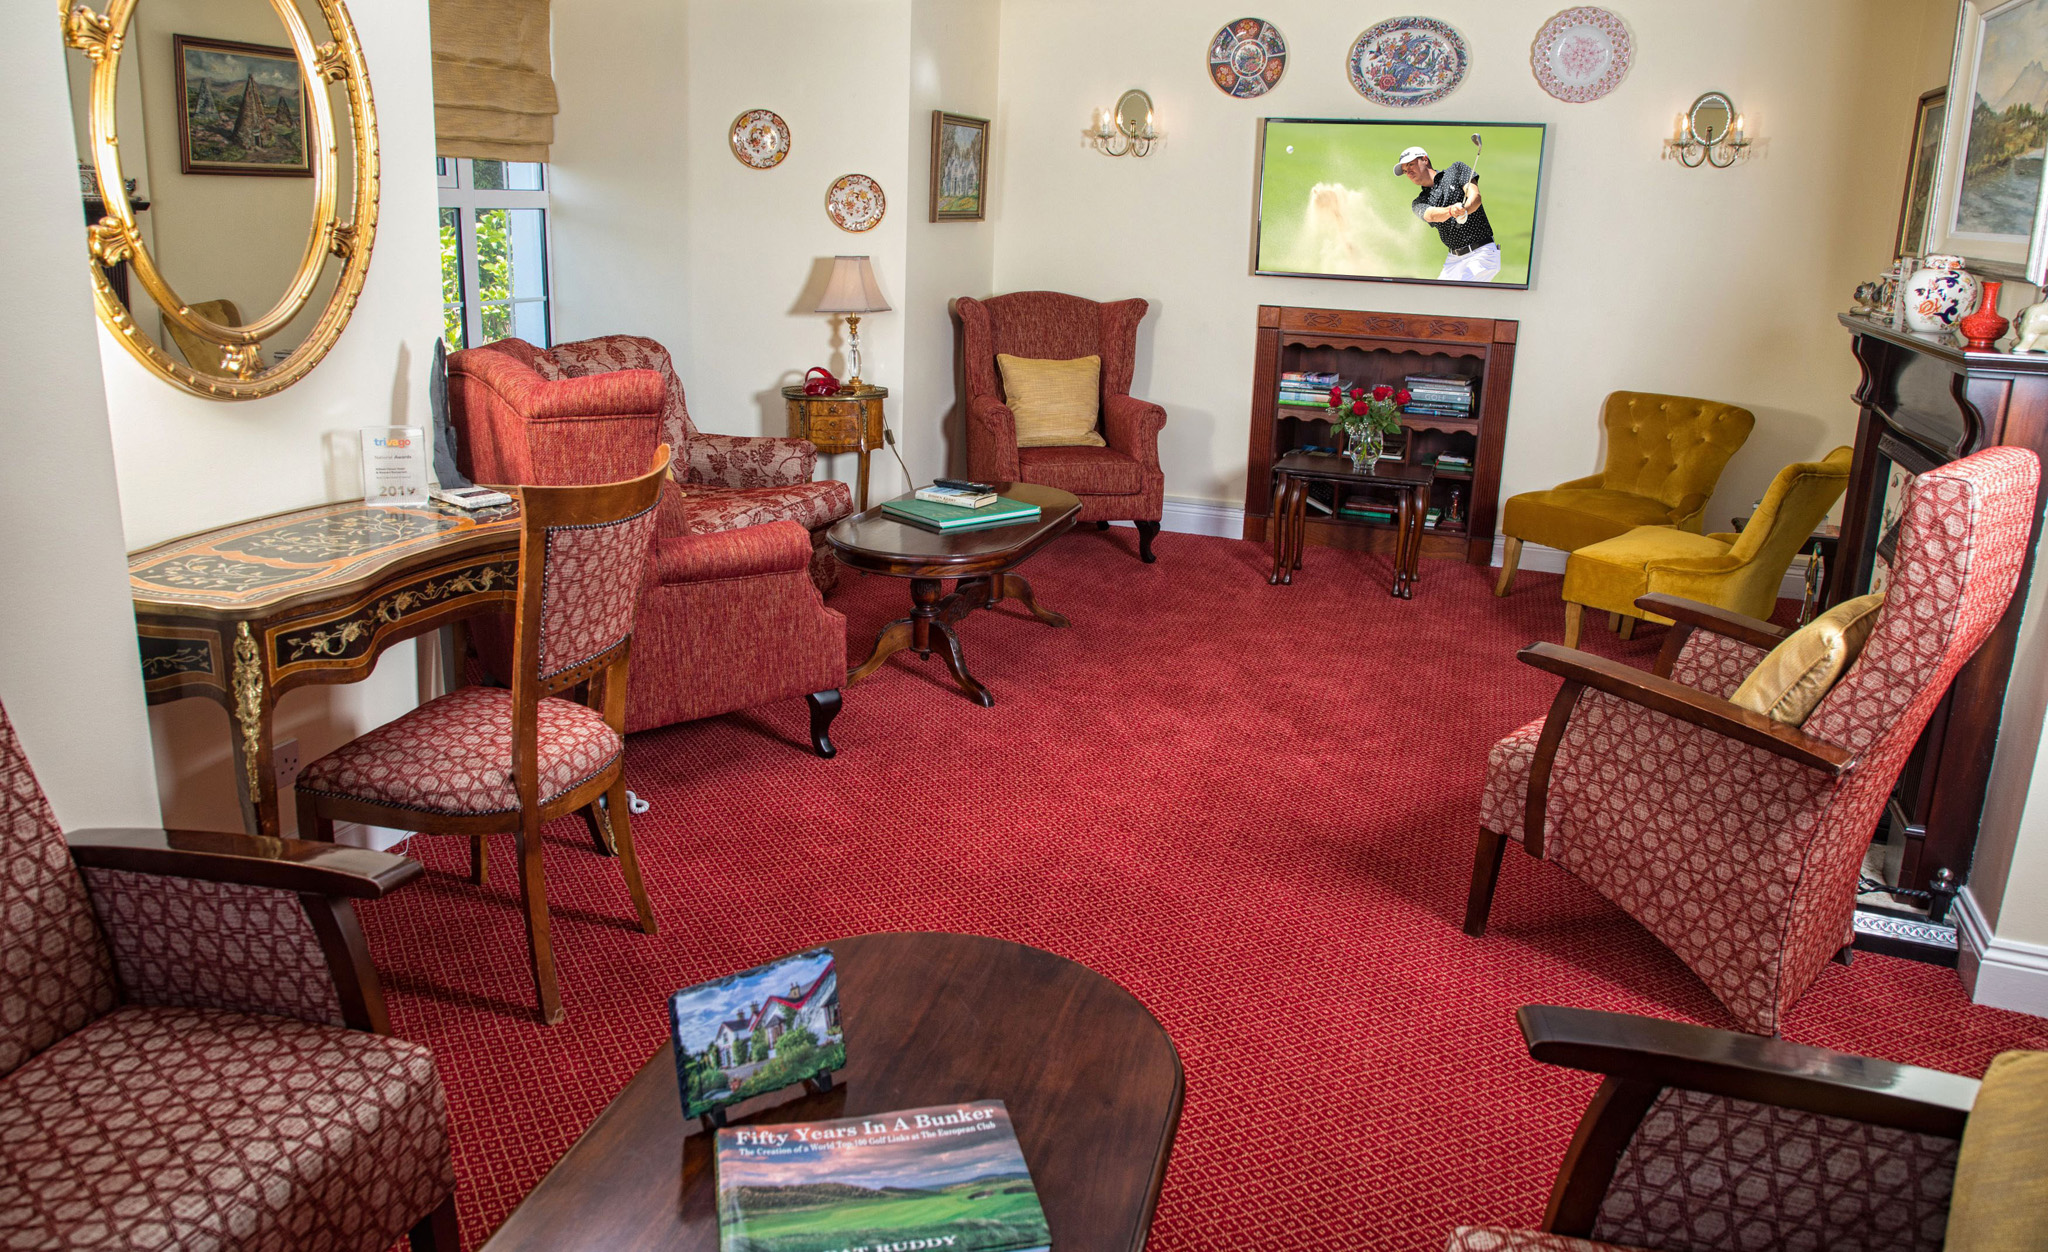 Killeen House Hotel | Aghadoe , Lakes of Killarney, Co Kerry | Photos 16